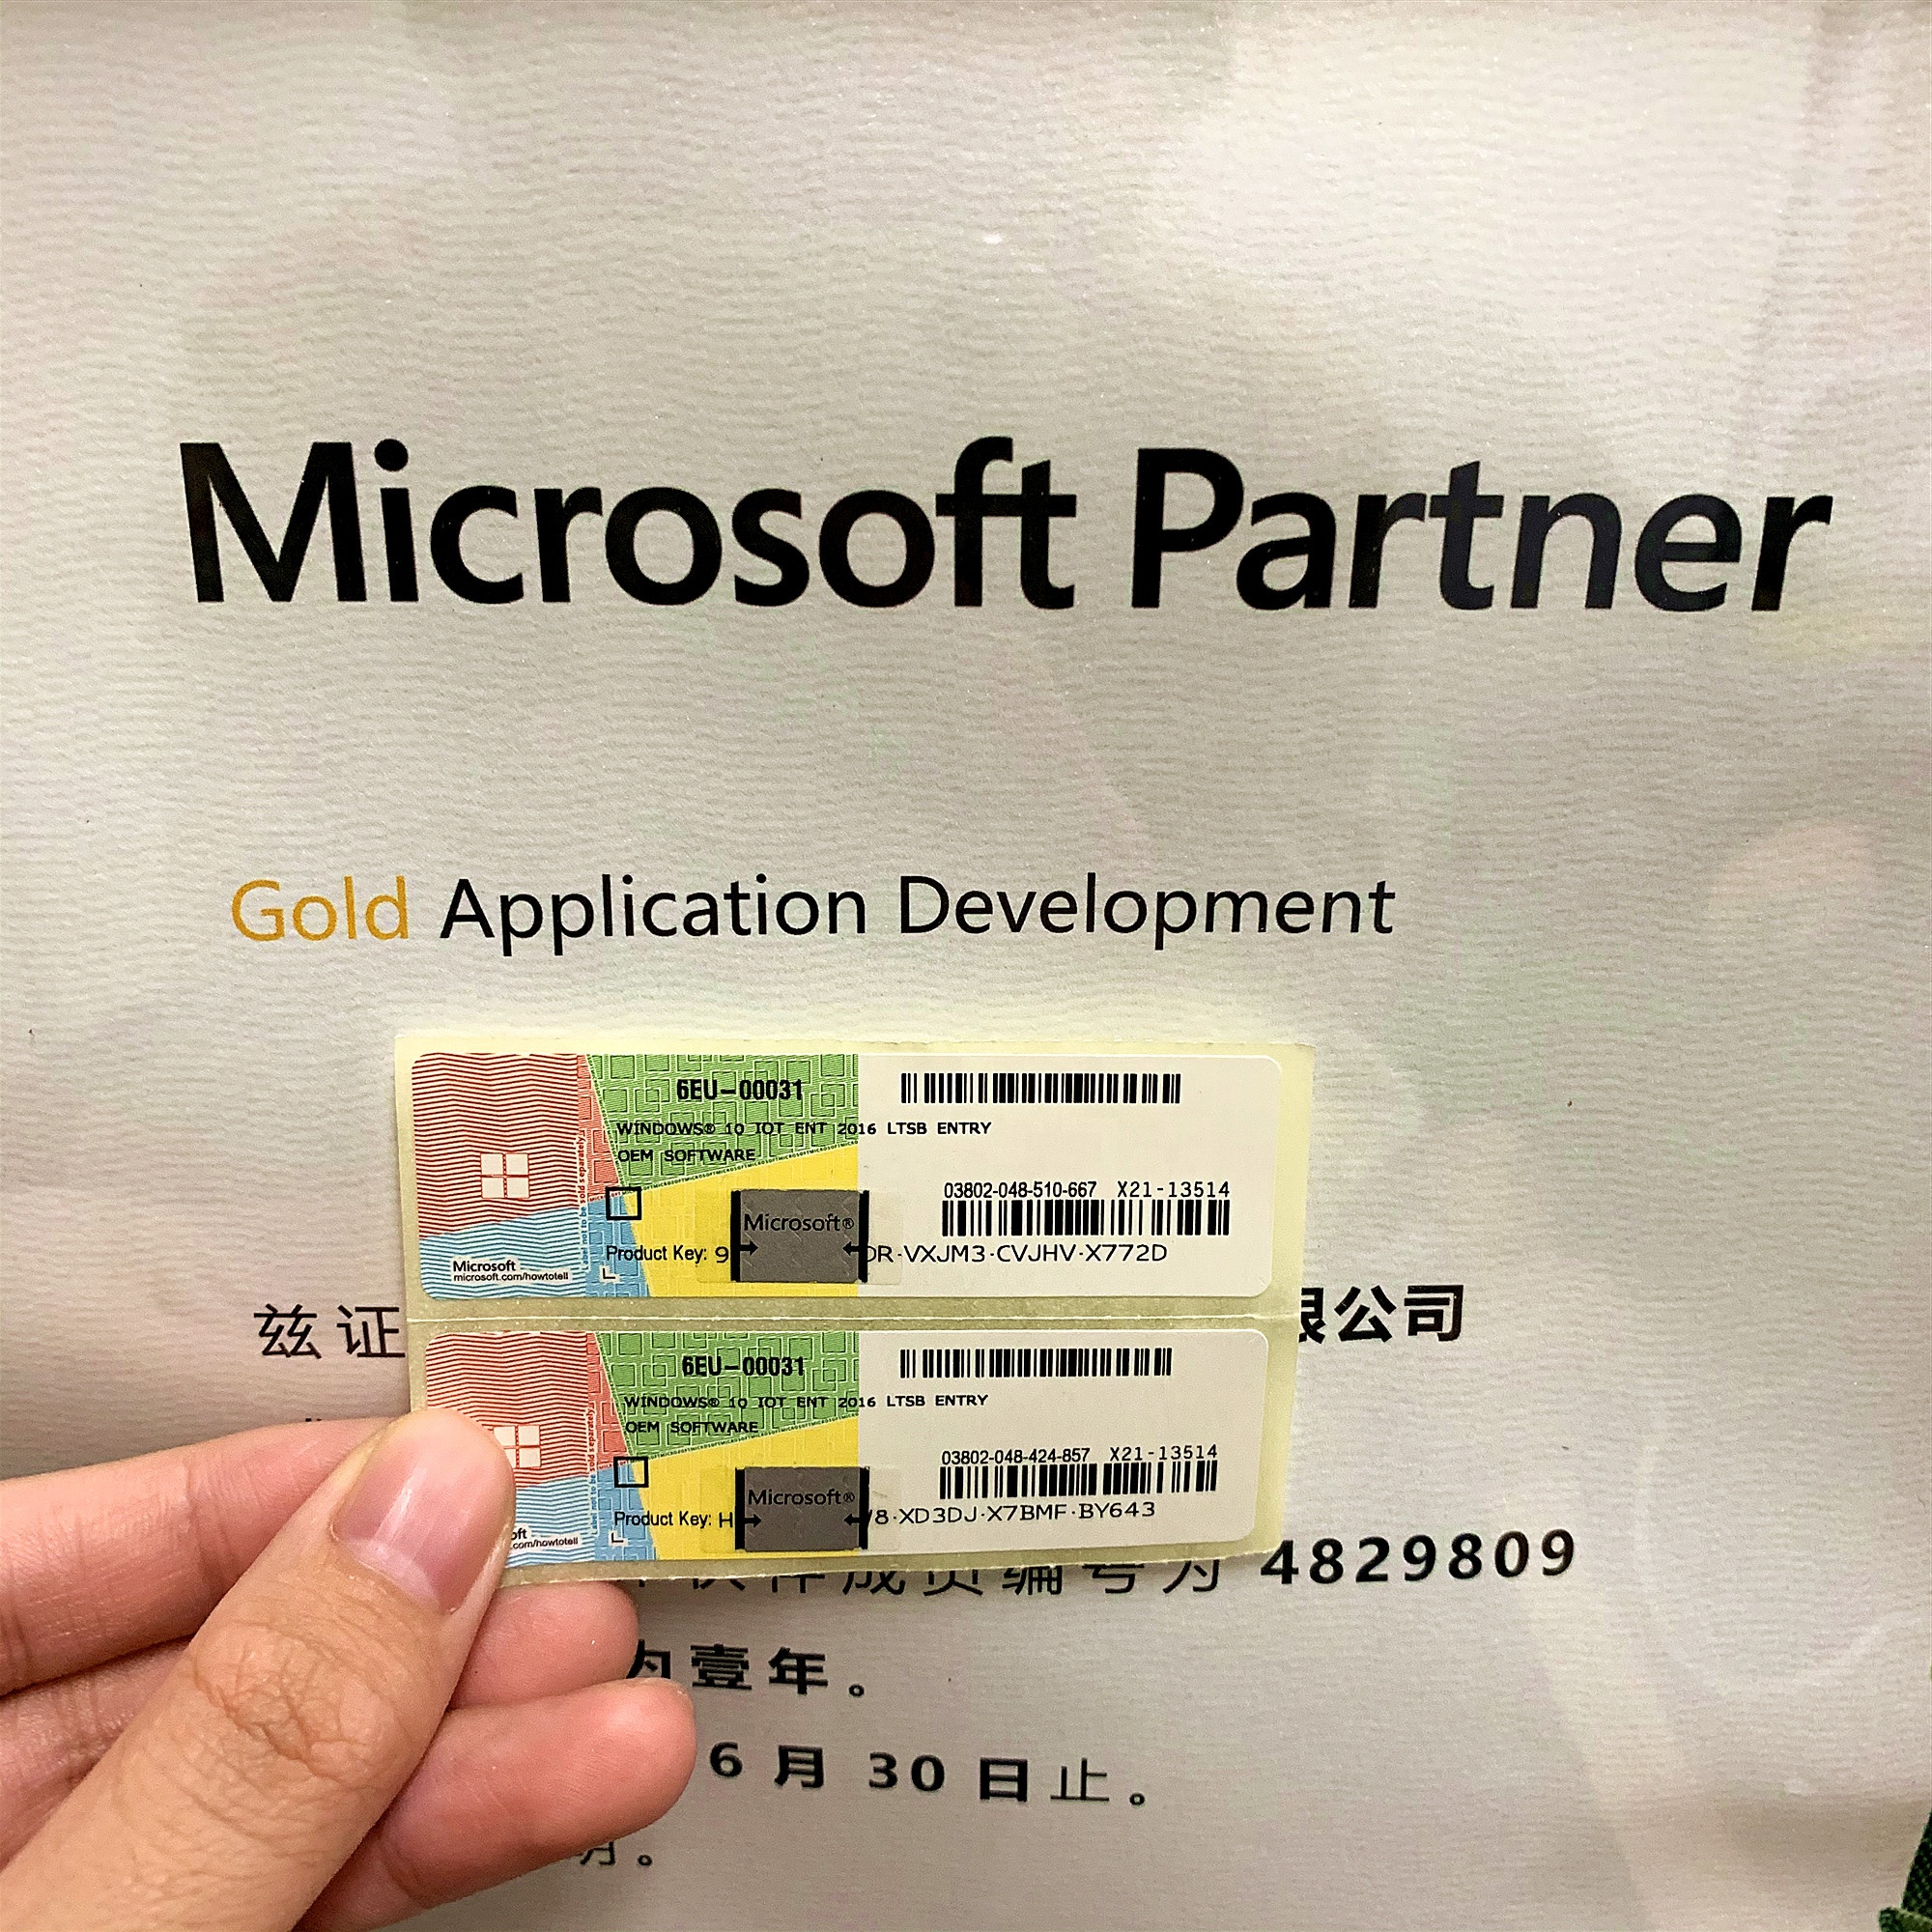 Global Version Microsoft Windows 10 Pro Software Windows 10 Pro Key COA Stickers 100% Online Activation